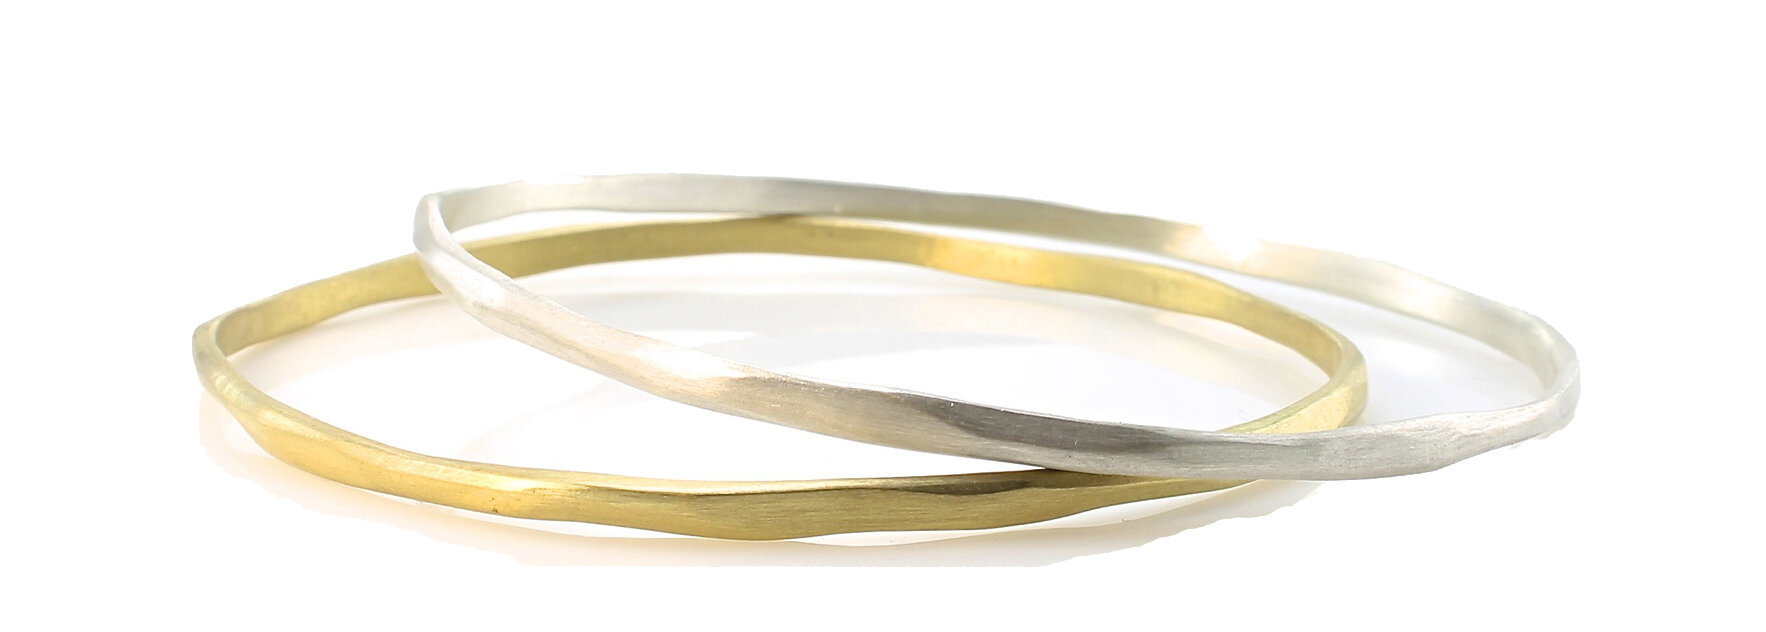 Thin, carved bangles in 18k gold and sterling silver